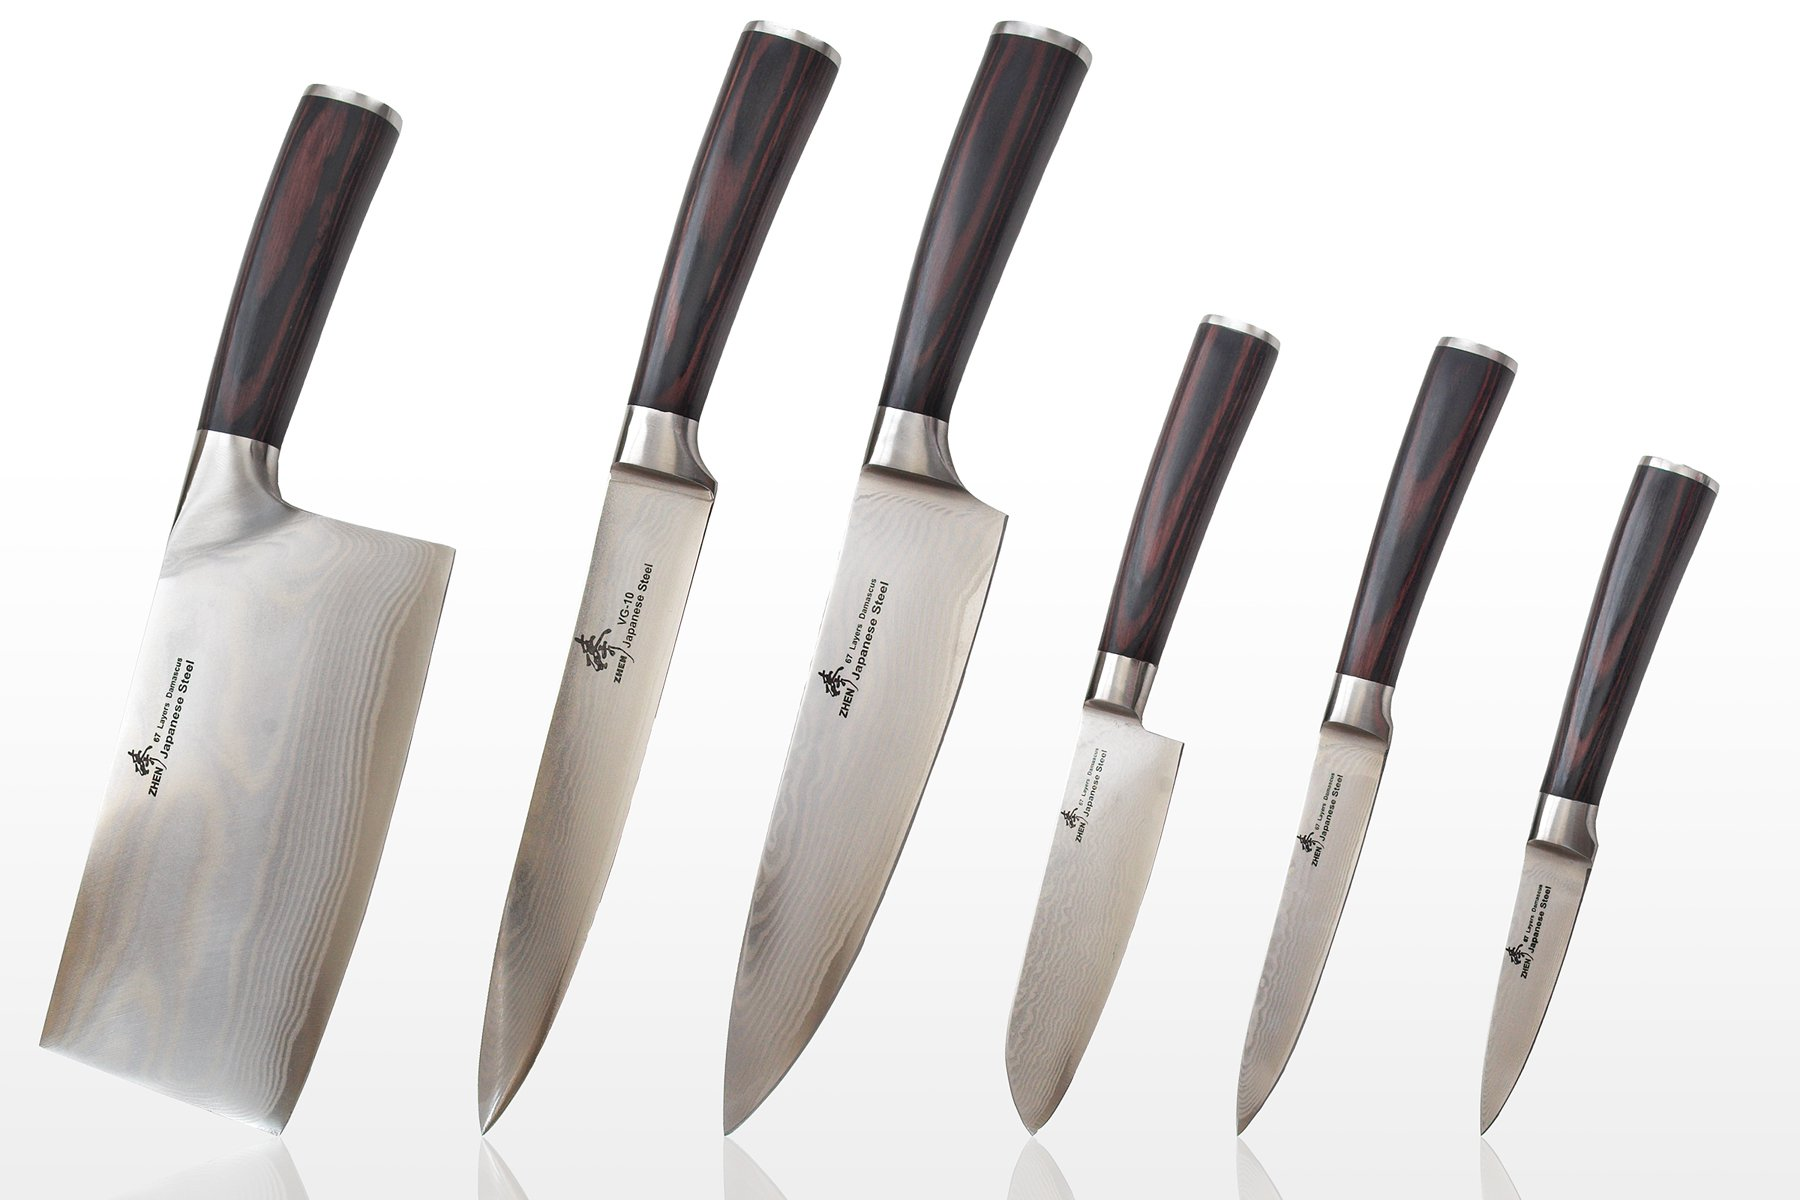 Zhen Japanese Damascus VG-10 Knife set, 6-piece